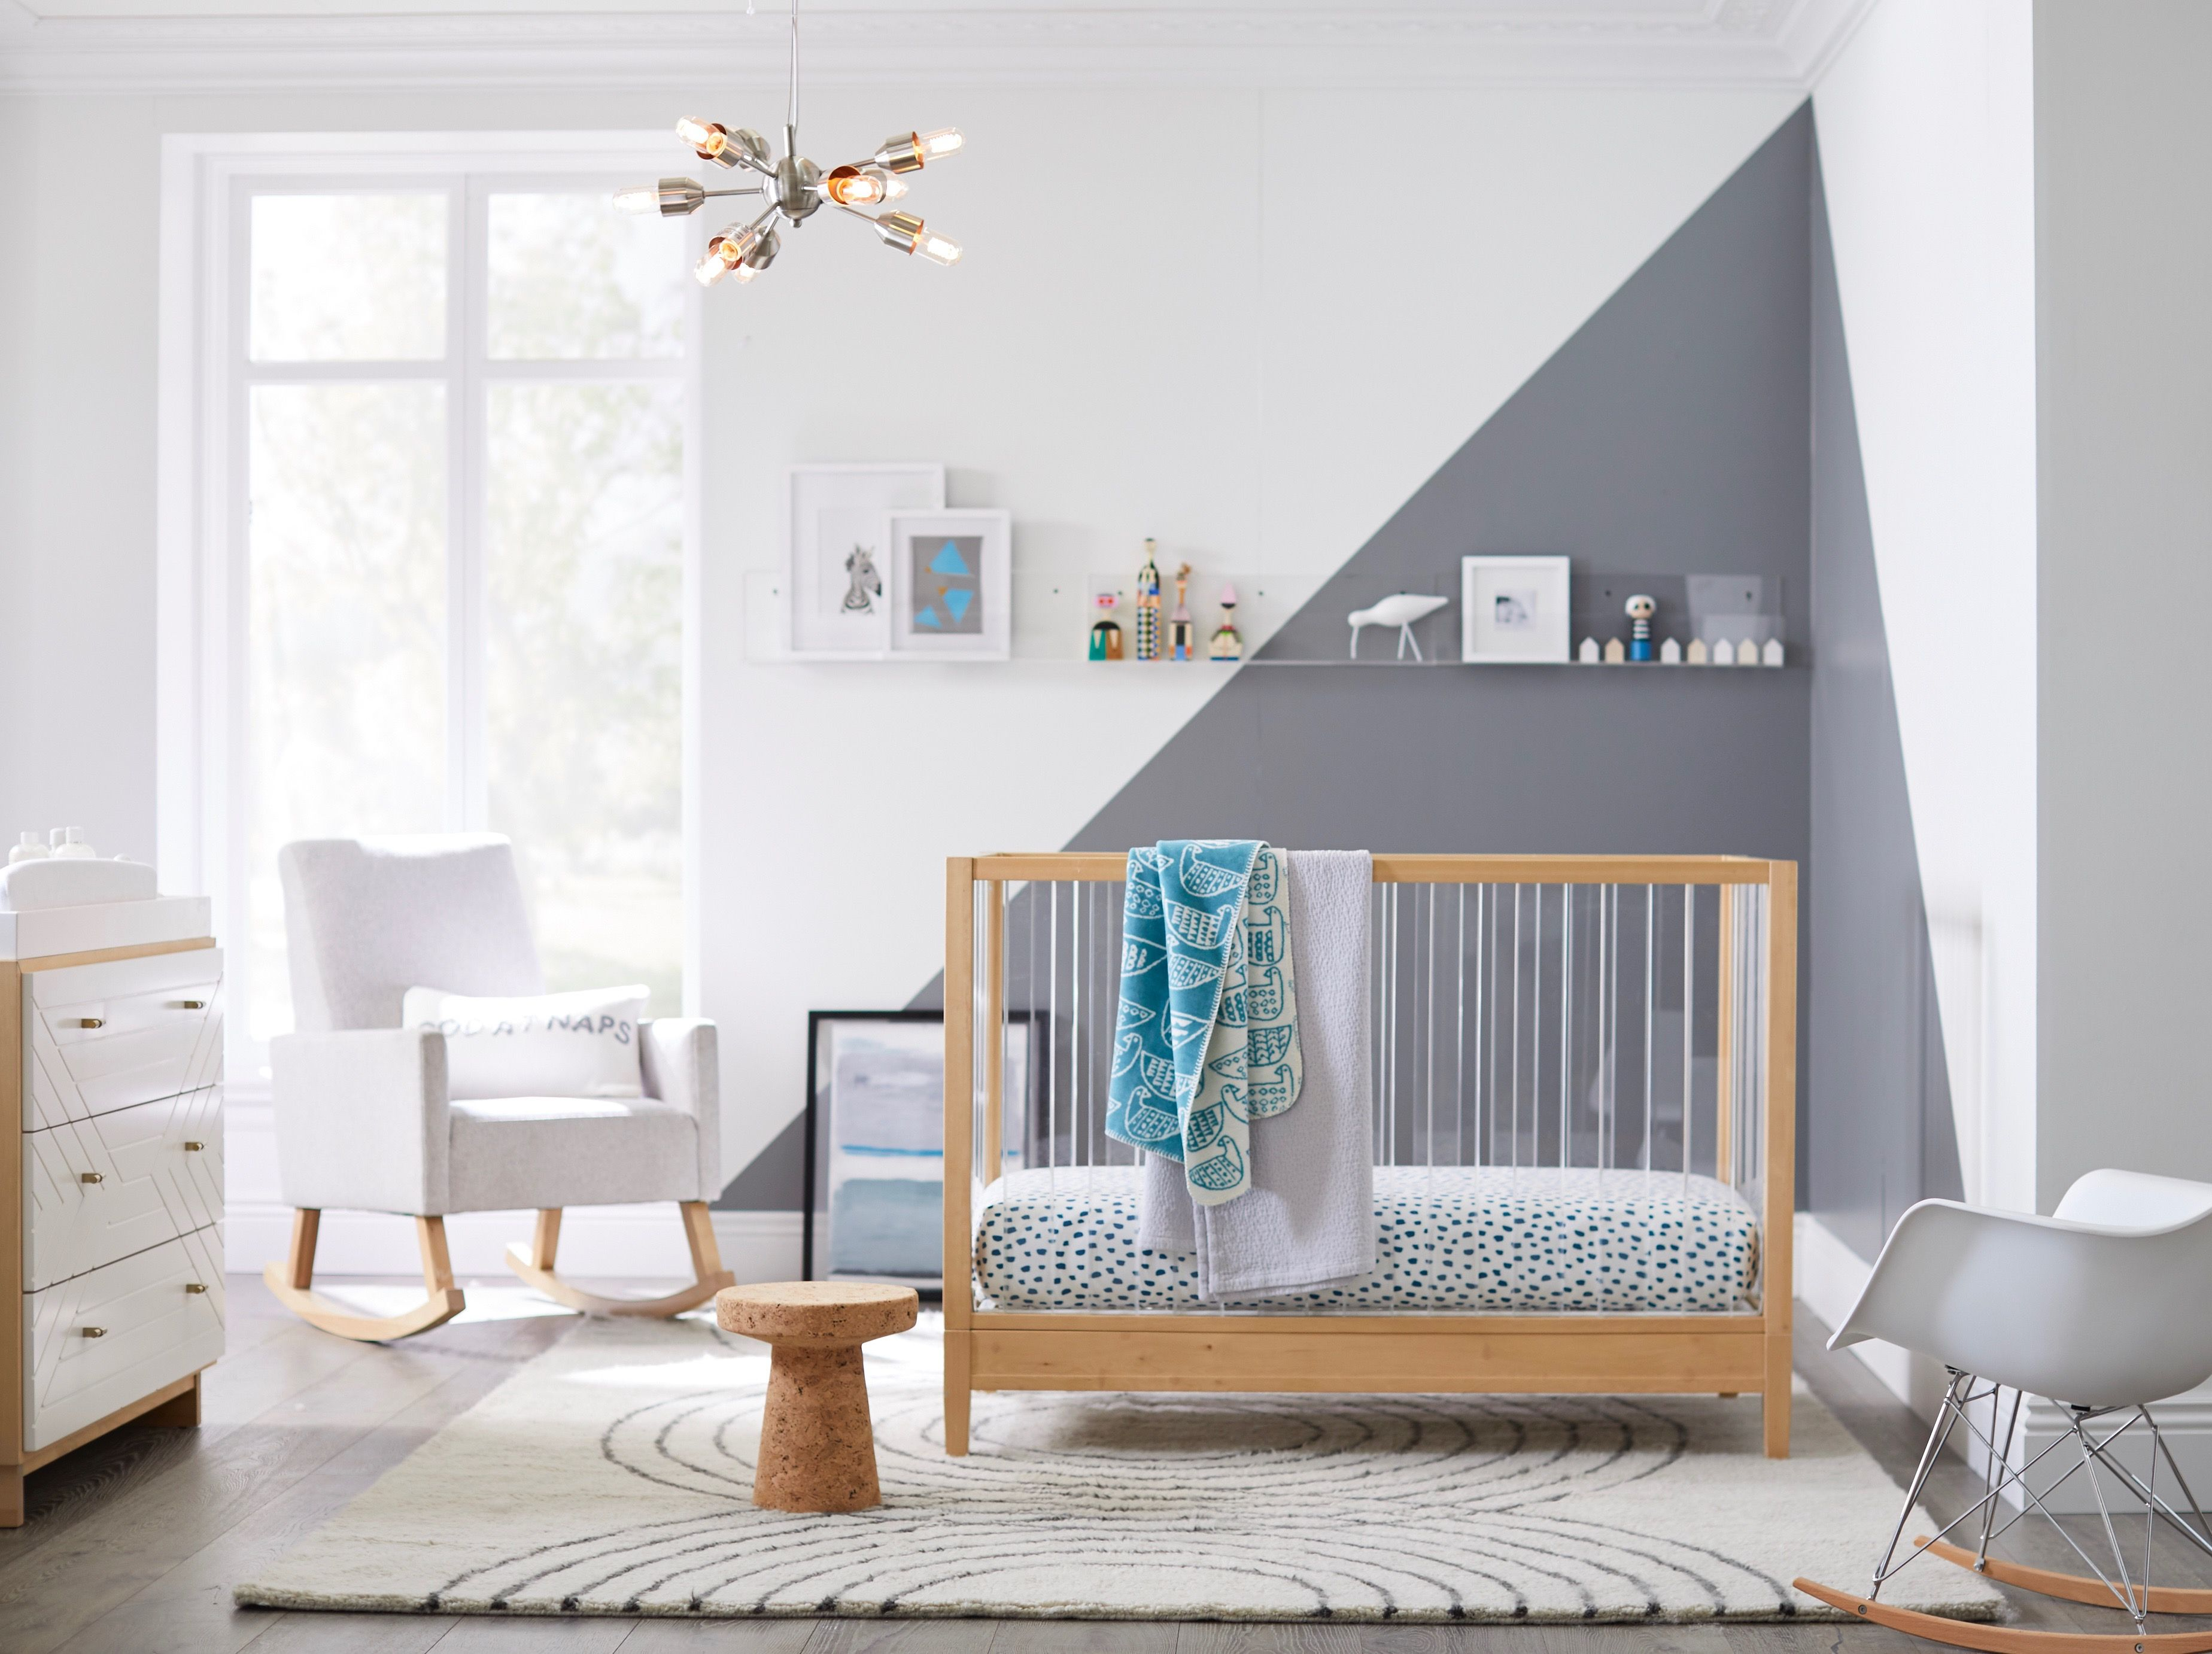 How to decorate a nursery with clean lines